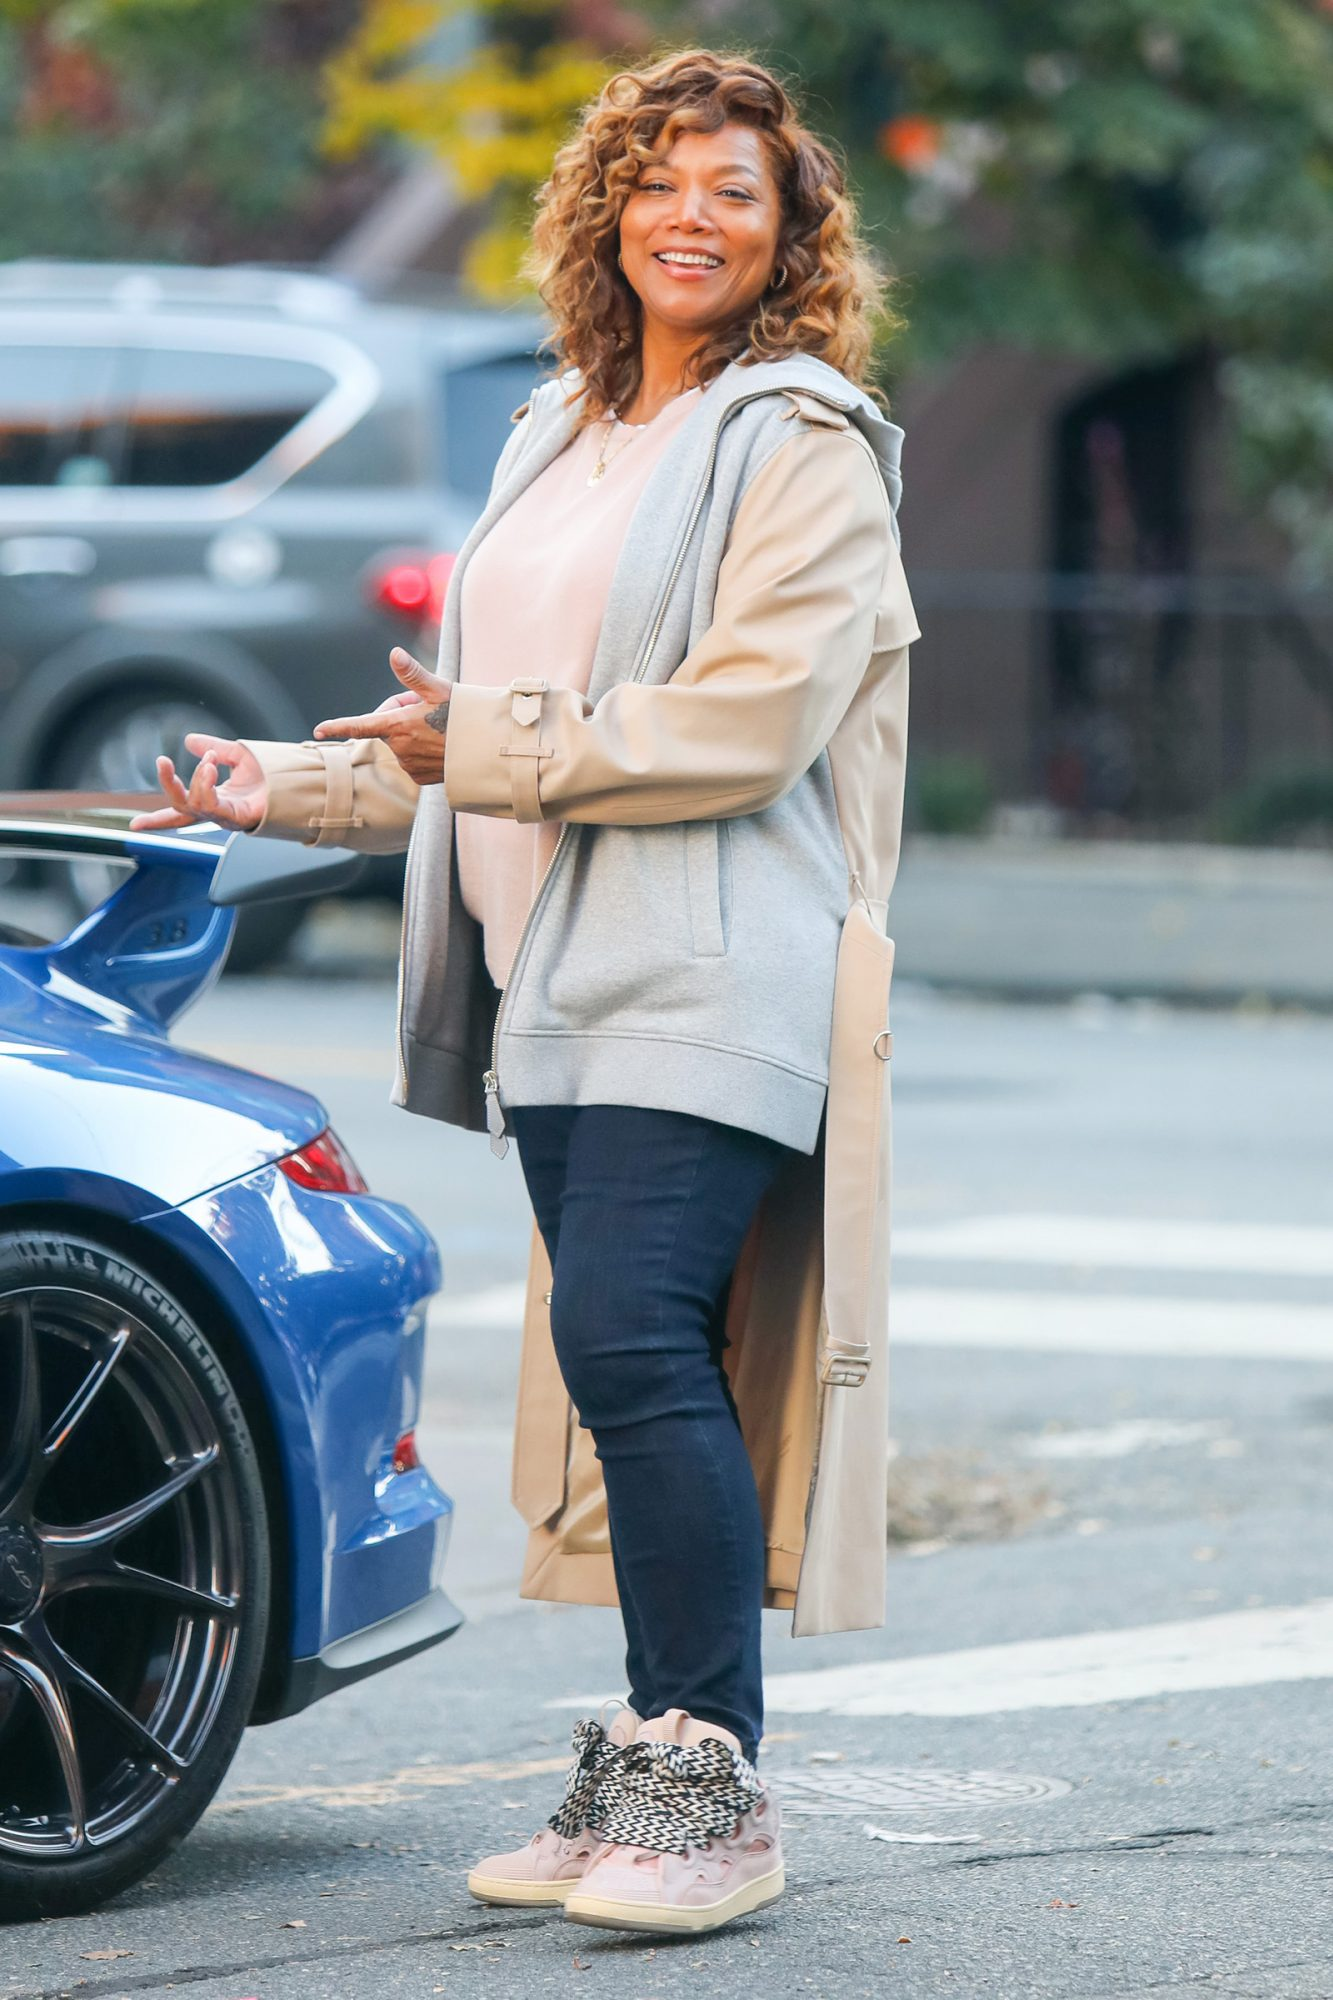 Queen Latifah is seen at the film set of 'The Equalizer' TV Series on November 09, 2020 in New York City